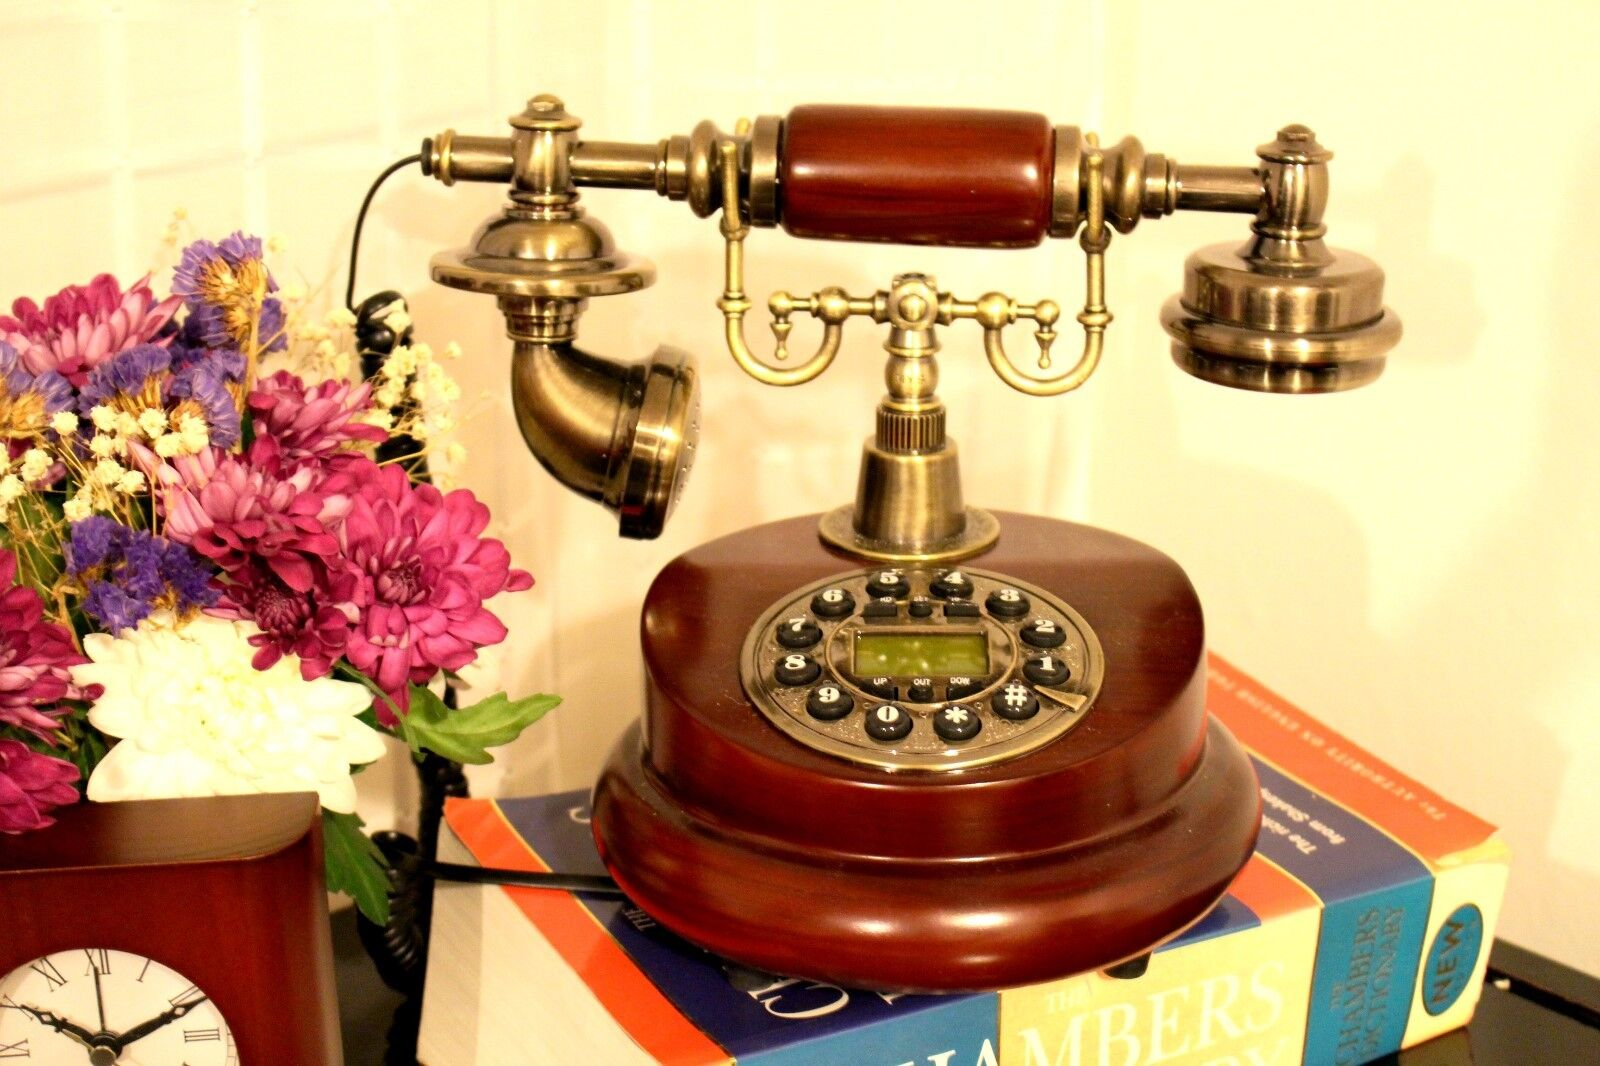 New Antique Button Dial Telephone Retro Vintage Wooden Home Decor Landline Cord